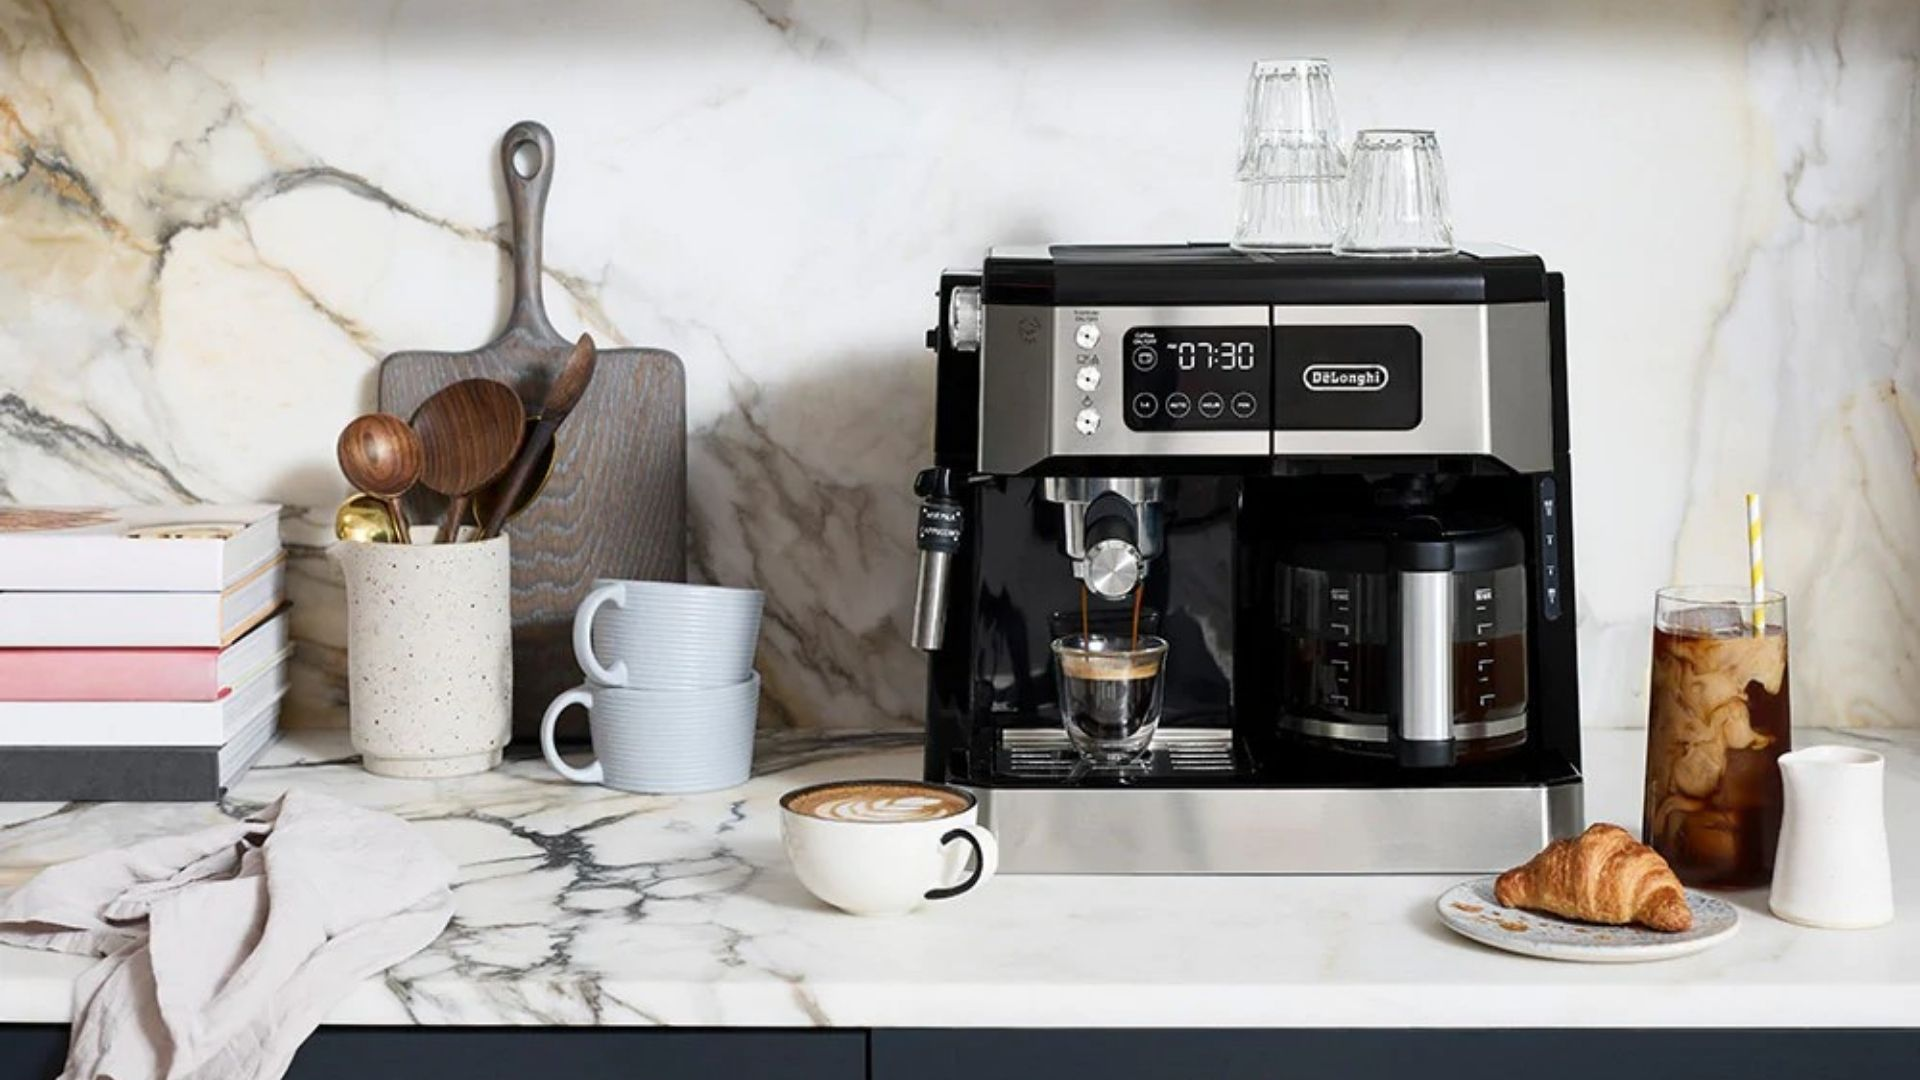 Best coffee makers – the top coffee machines for espresso, drip, and manual  methods | Homes & Gardens